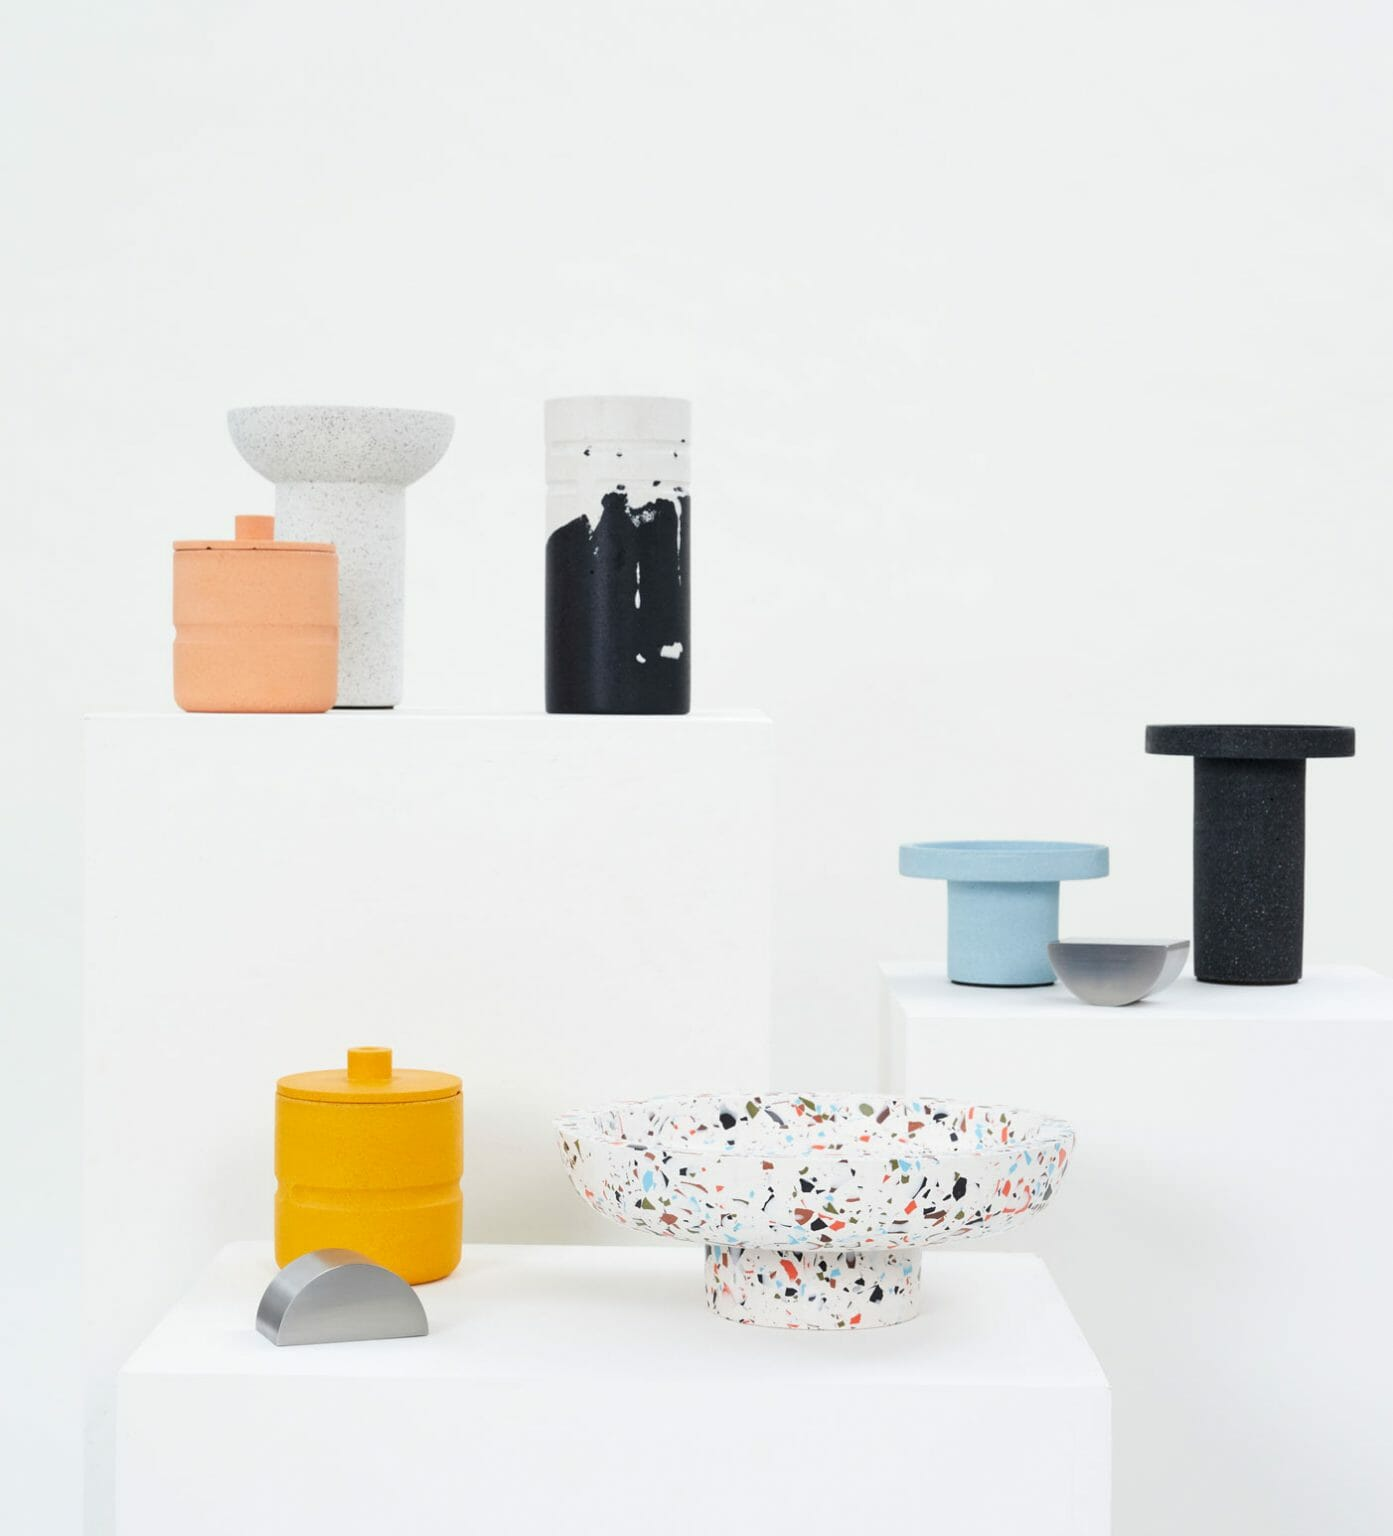 objects-collection